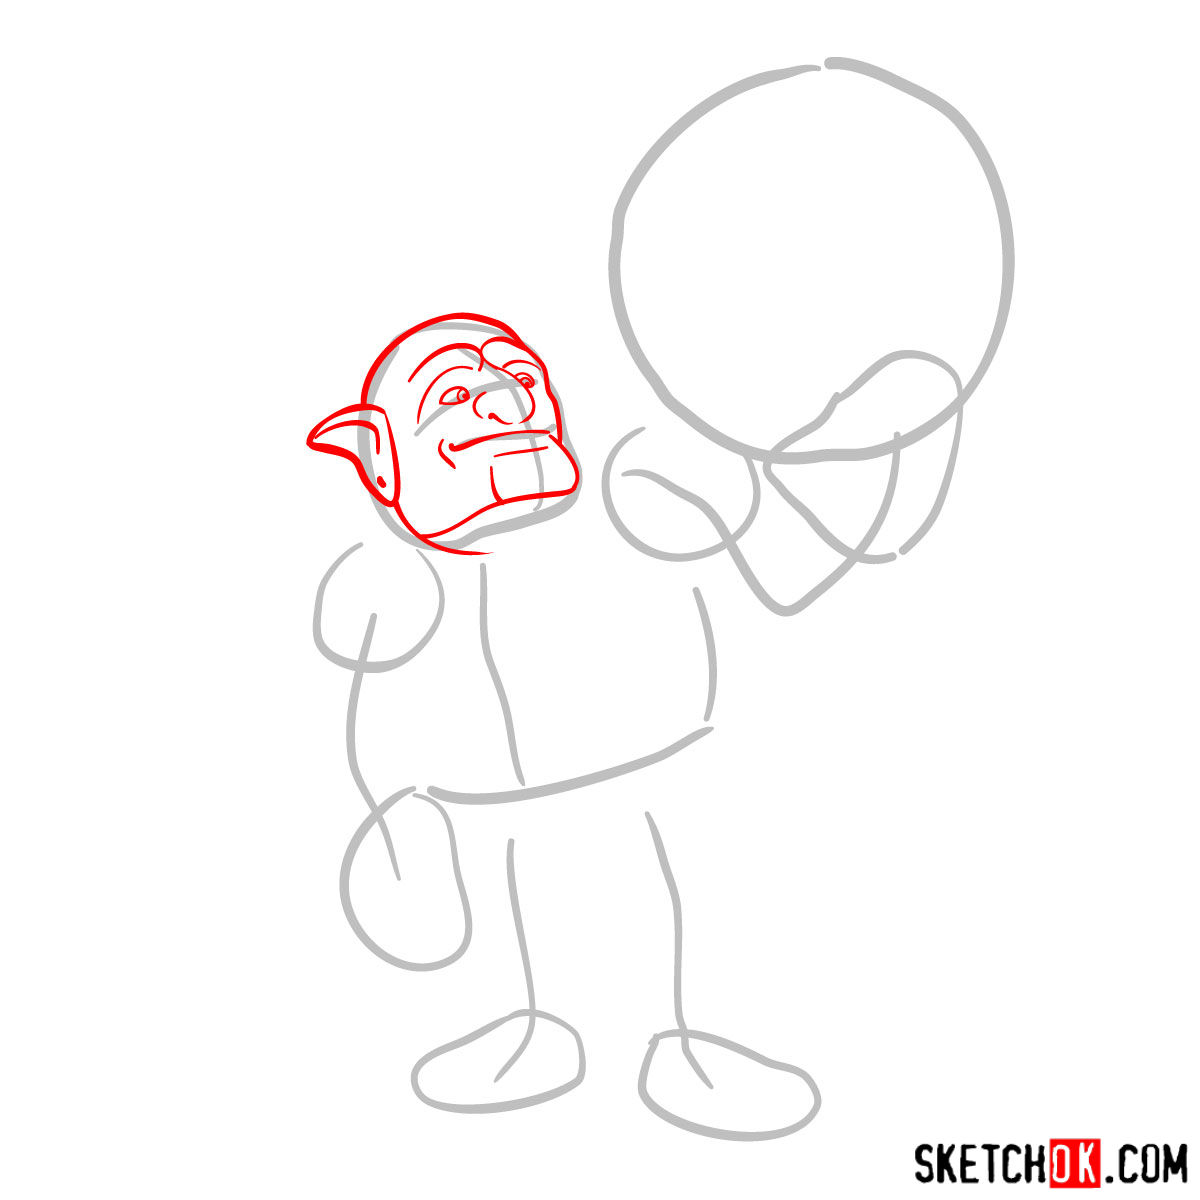 How to draw Bowler from Clash of Clans - step 02